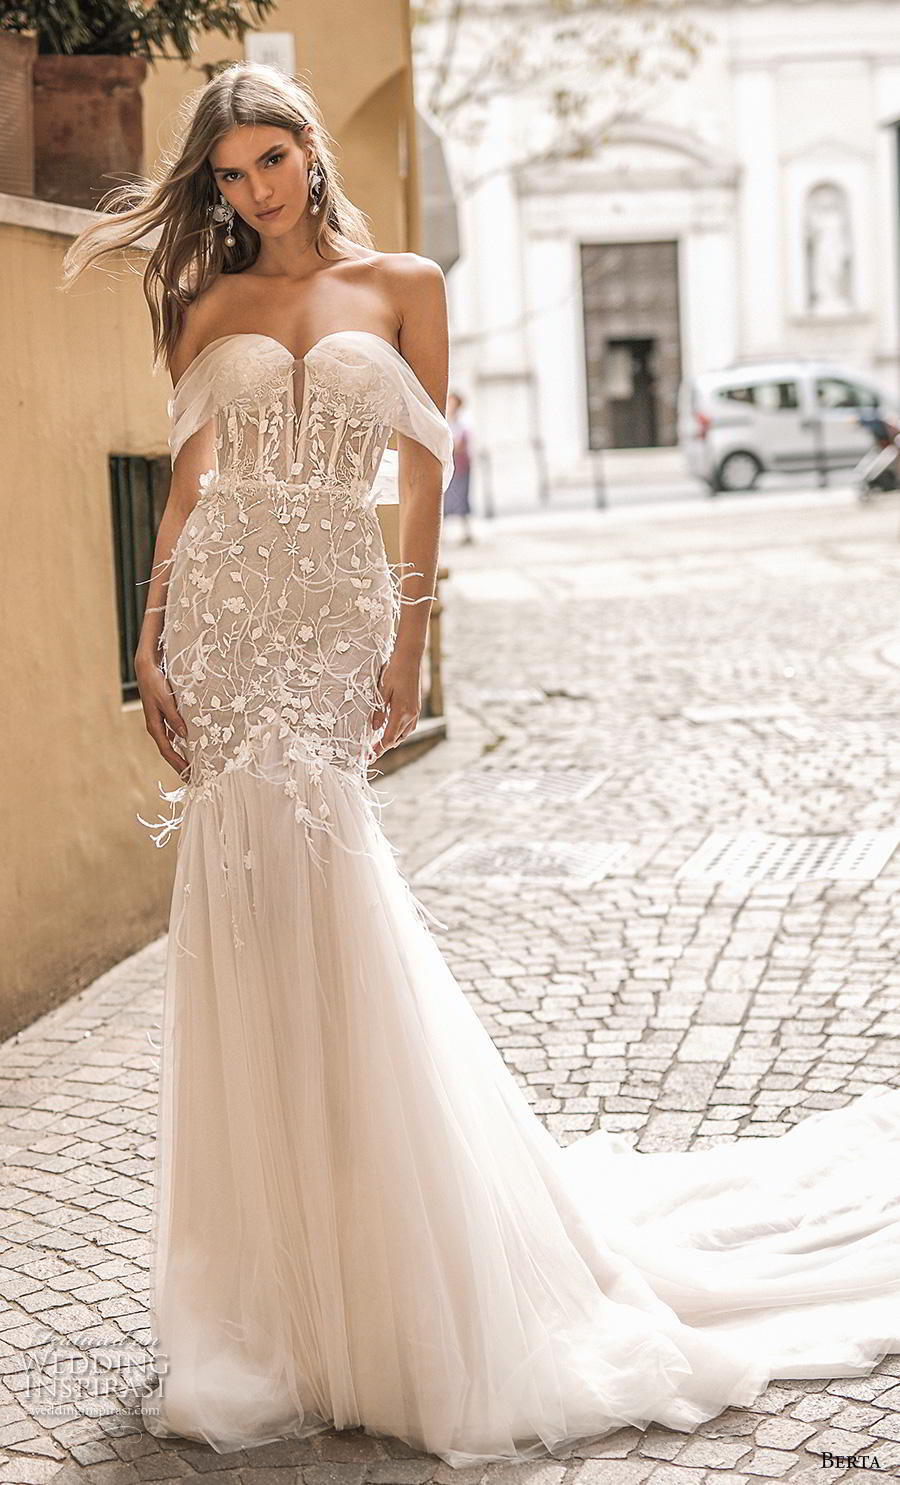 52e0d800568ac berta 2019 privee bridal off the shoulder sweetheart neckline heavily  embellished bodice bustier tulle skirt romantic